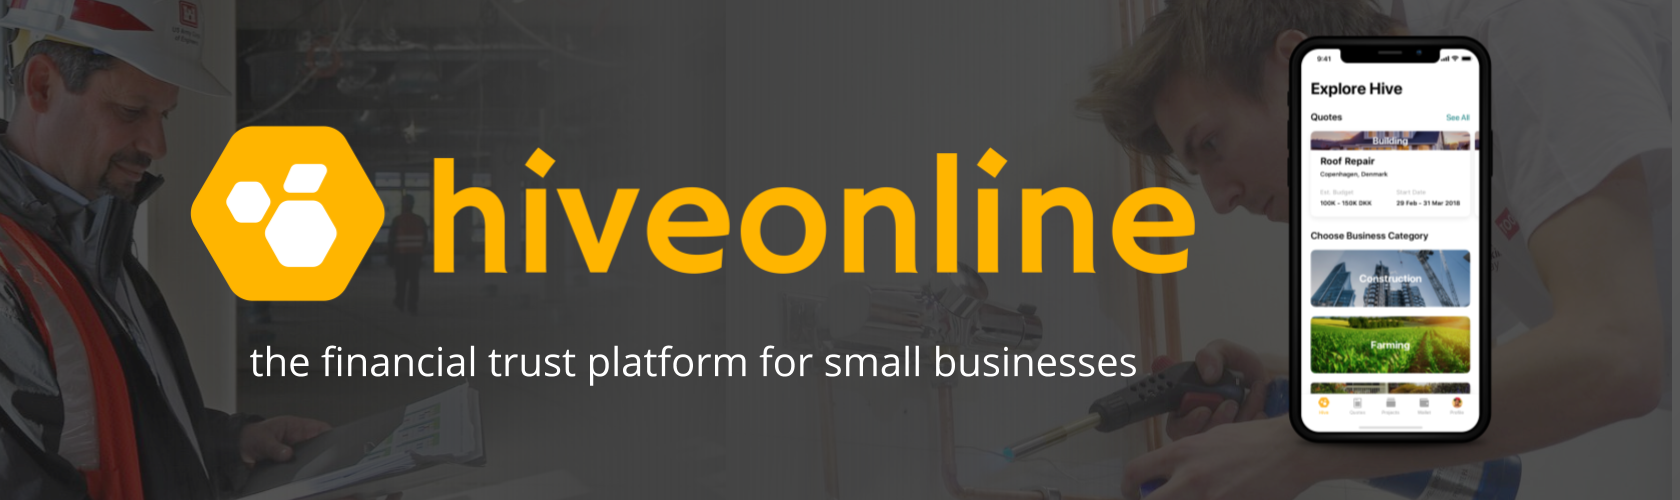 hiveonline - the financial trust platform for small businesses